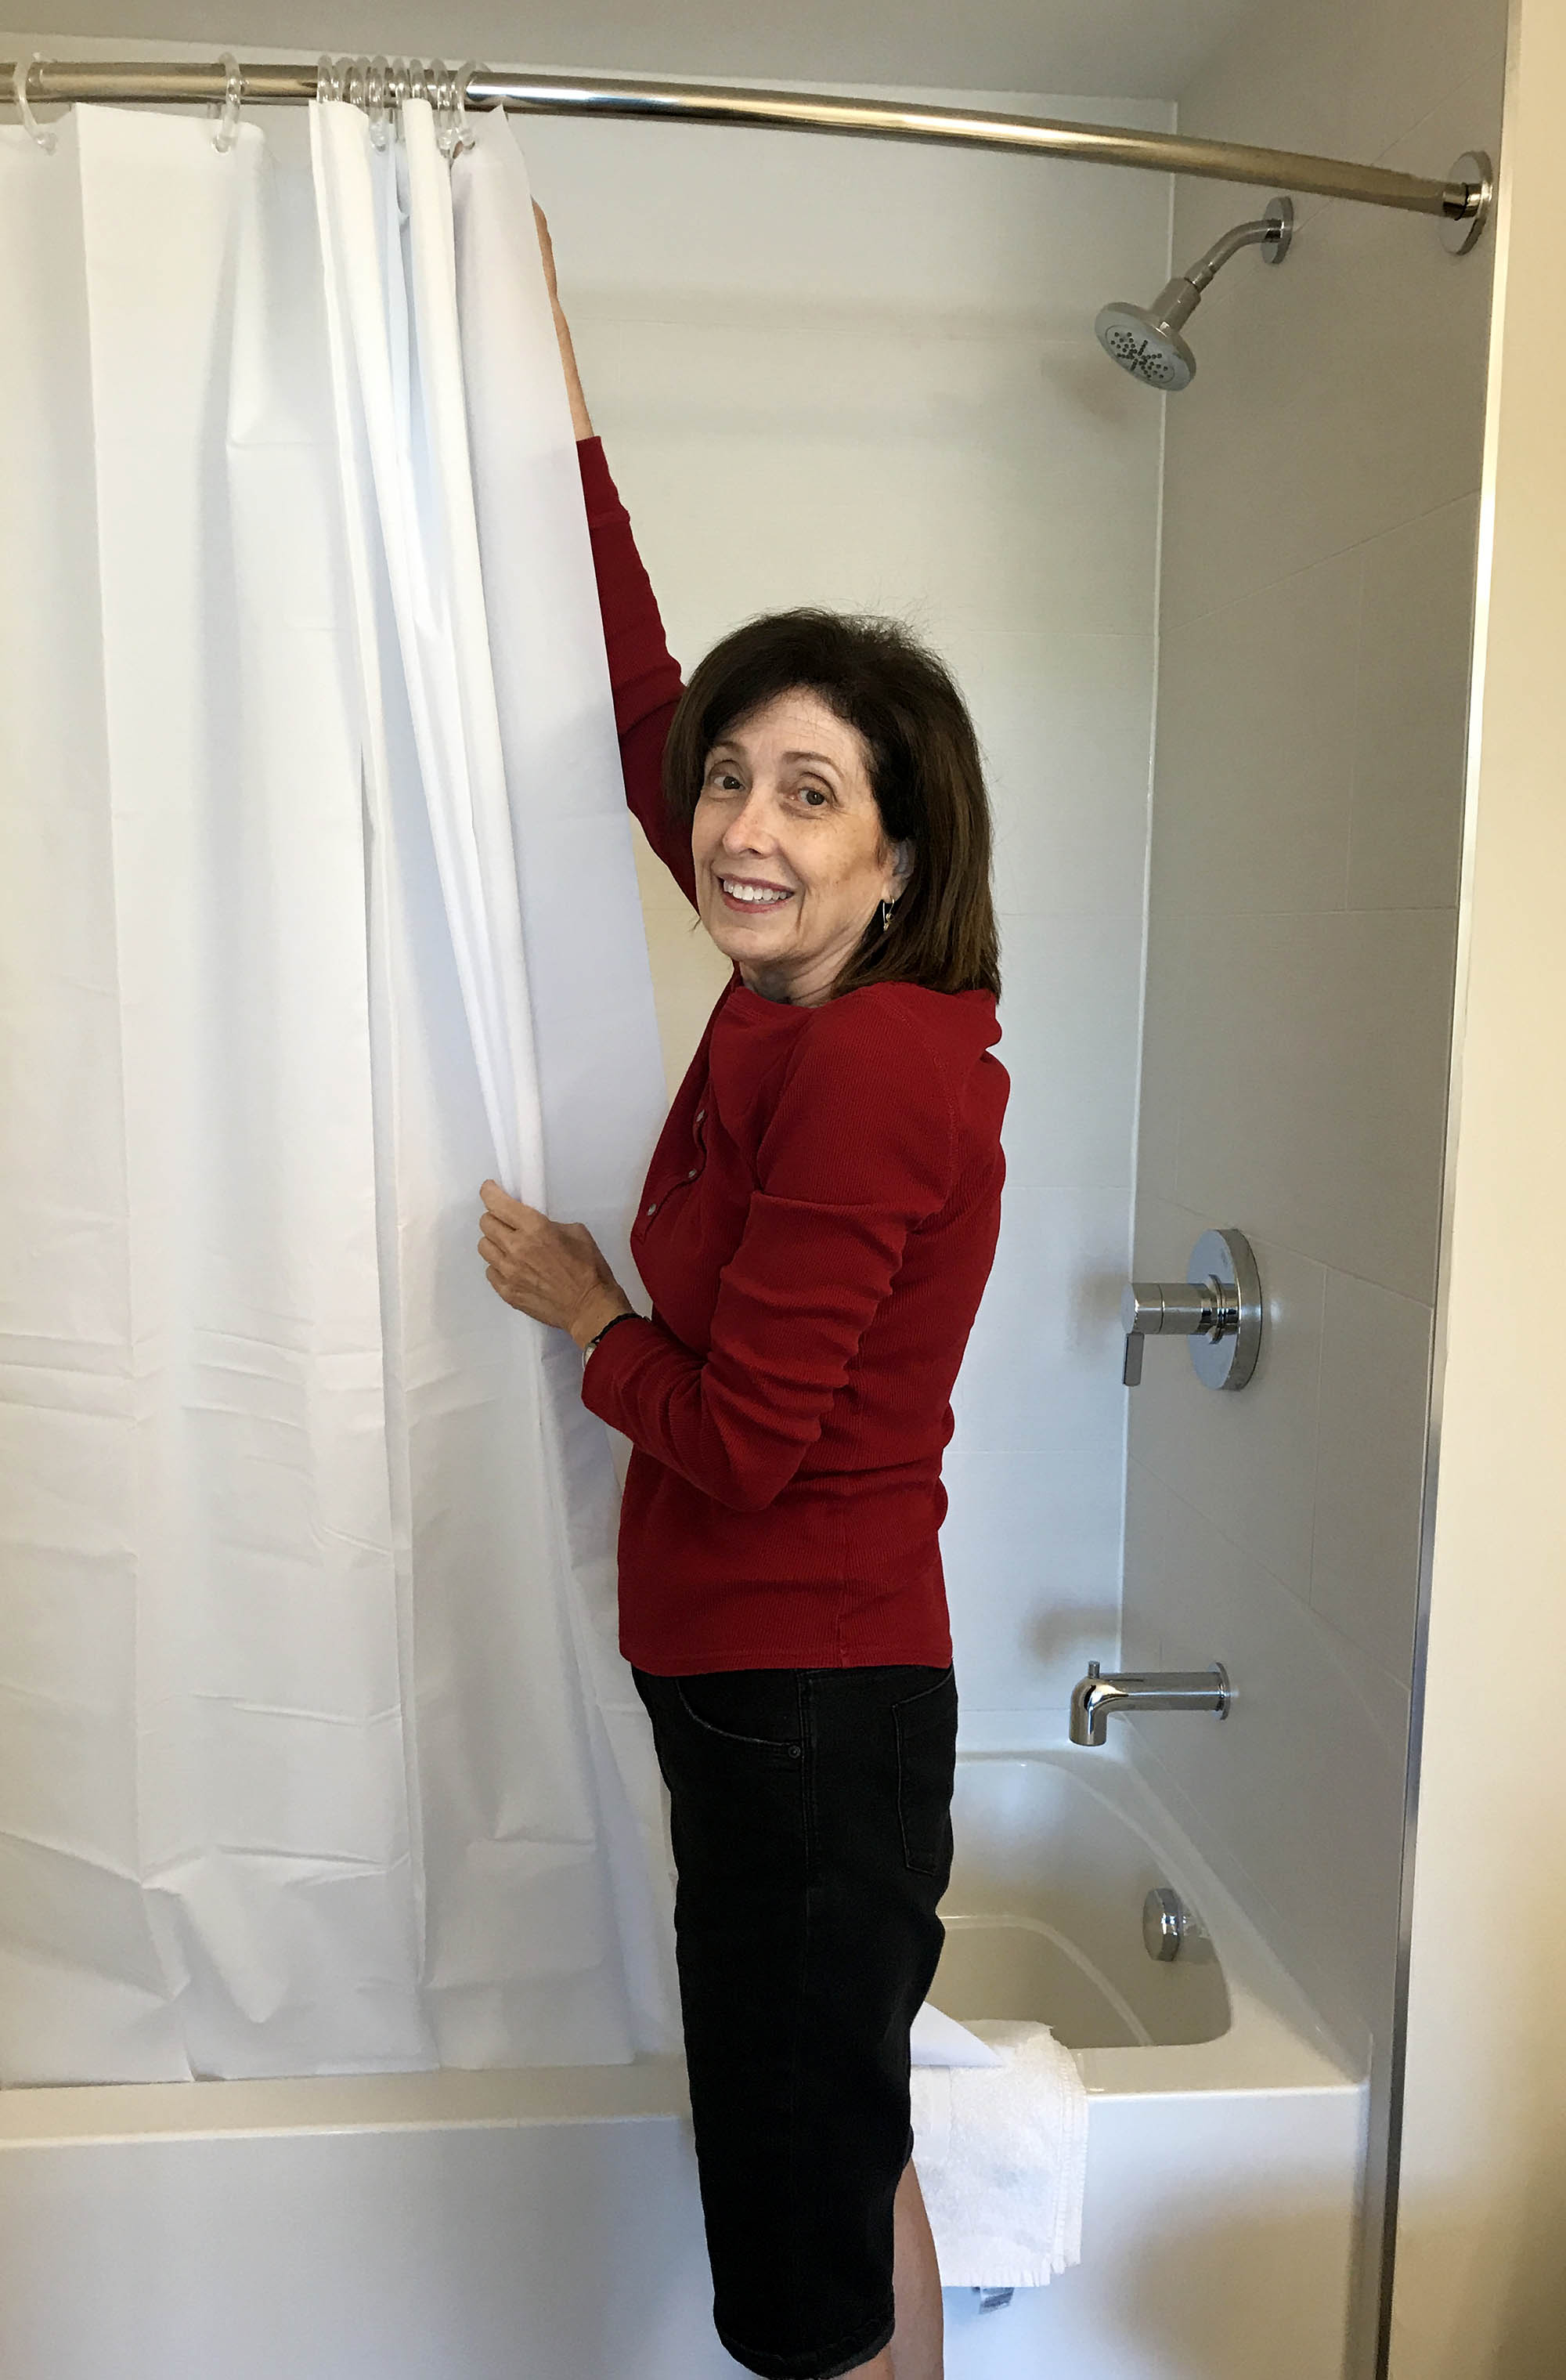 Volunteer setting up a shower curtain